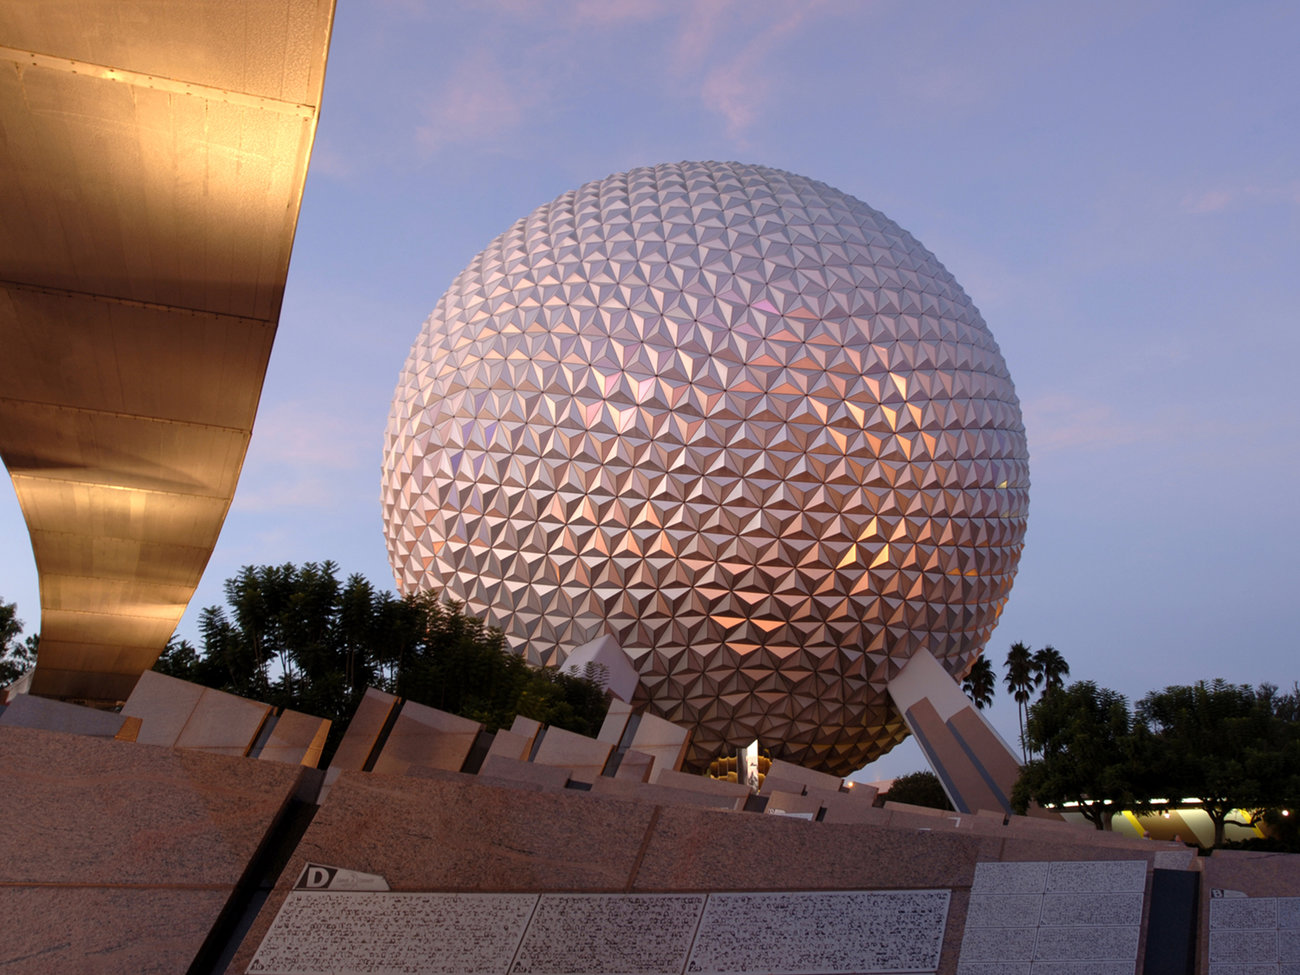 Epcot Resort in Orlando